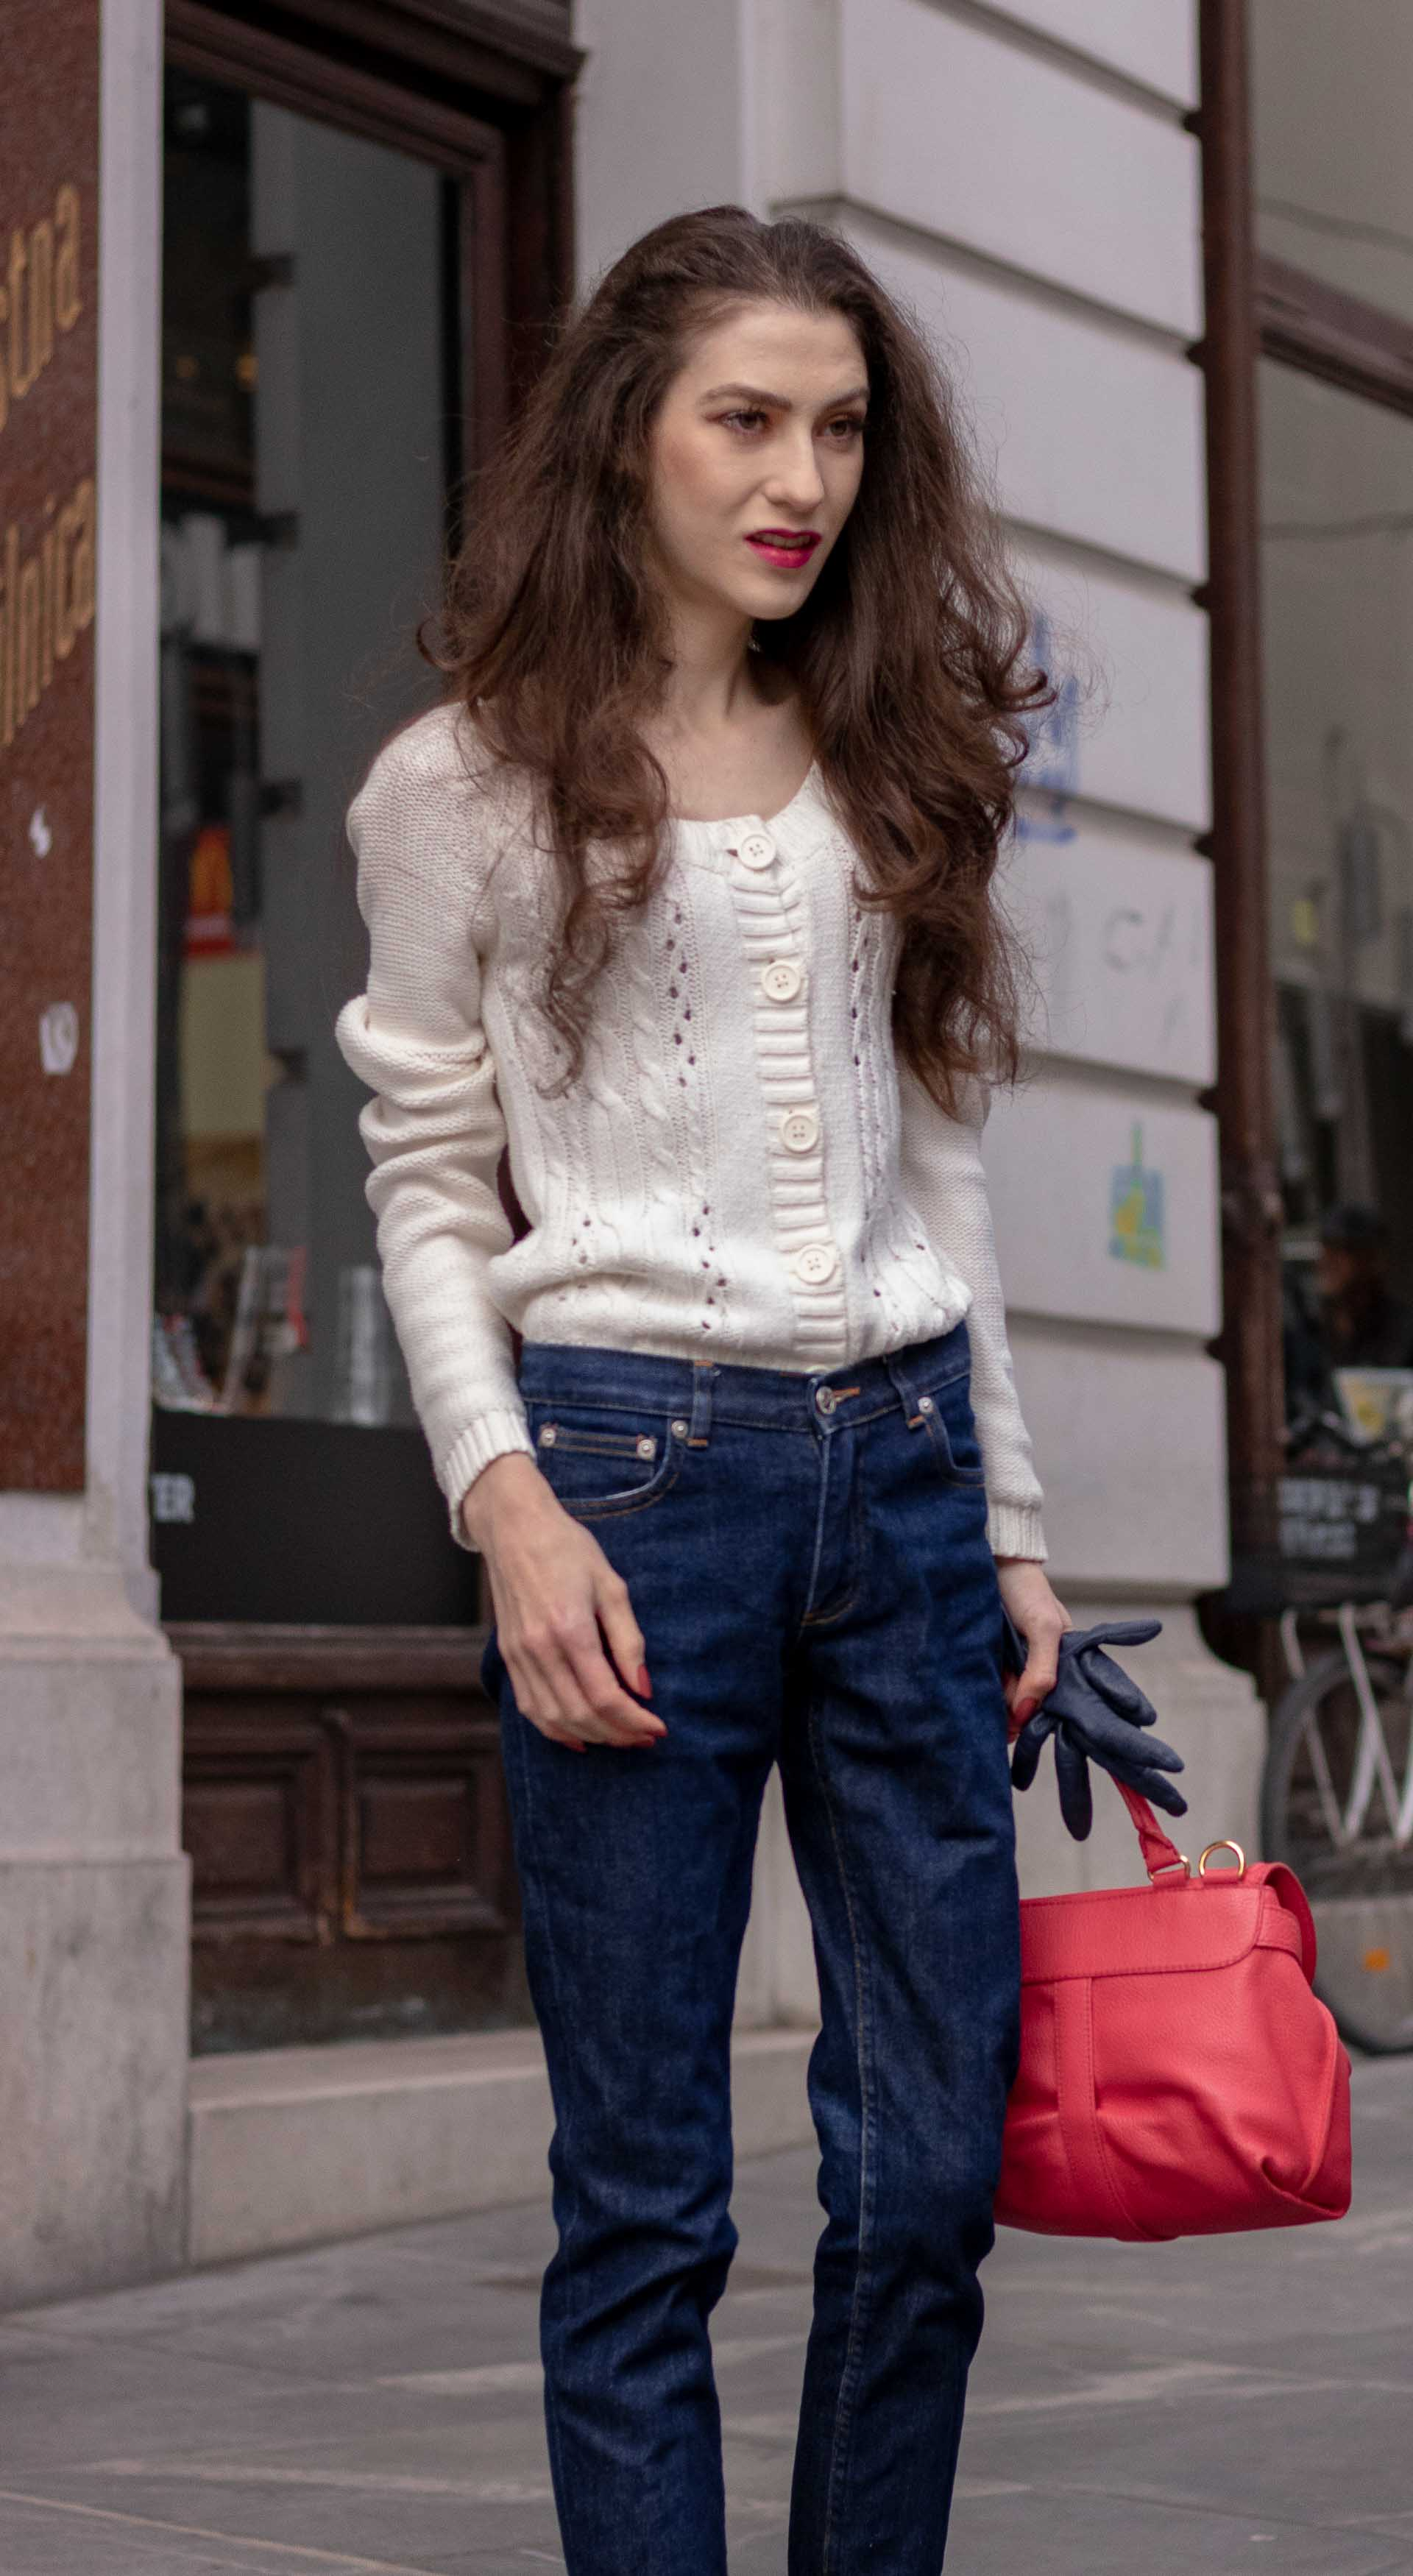 Beautiful Slovenian Fashion Blogger Veronika Lipar of Brunette from Wall wearing white Mango cardigan tucked into dark blue denim jeans from a.p.c., blue Gianvito Rossi pumps, pink top handle bag on the street